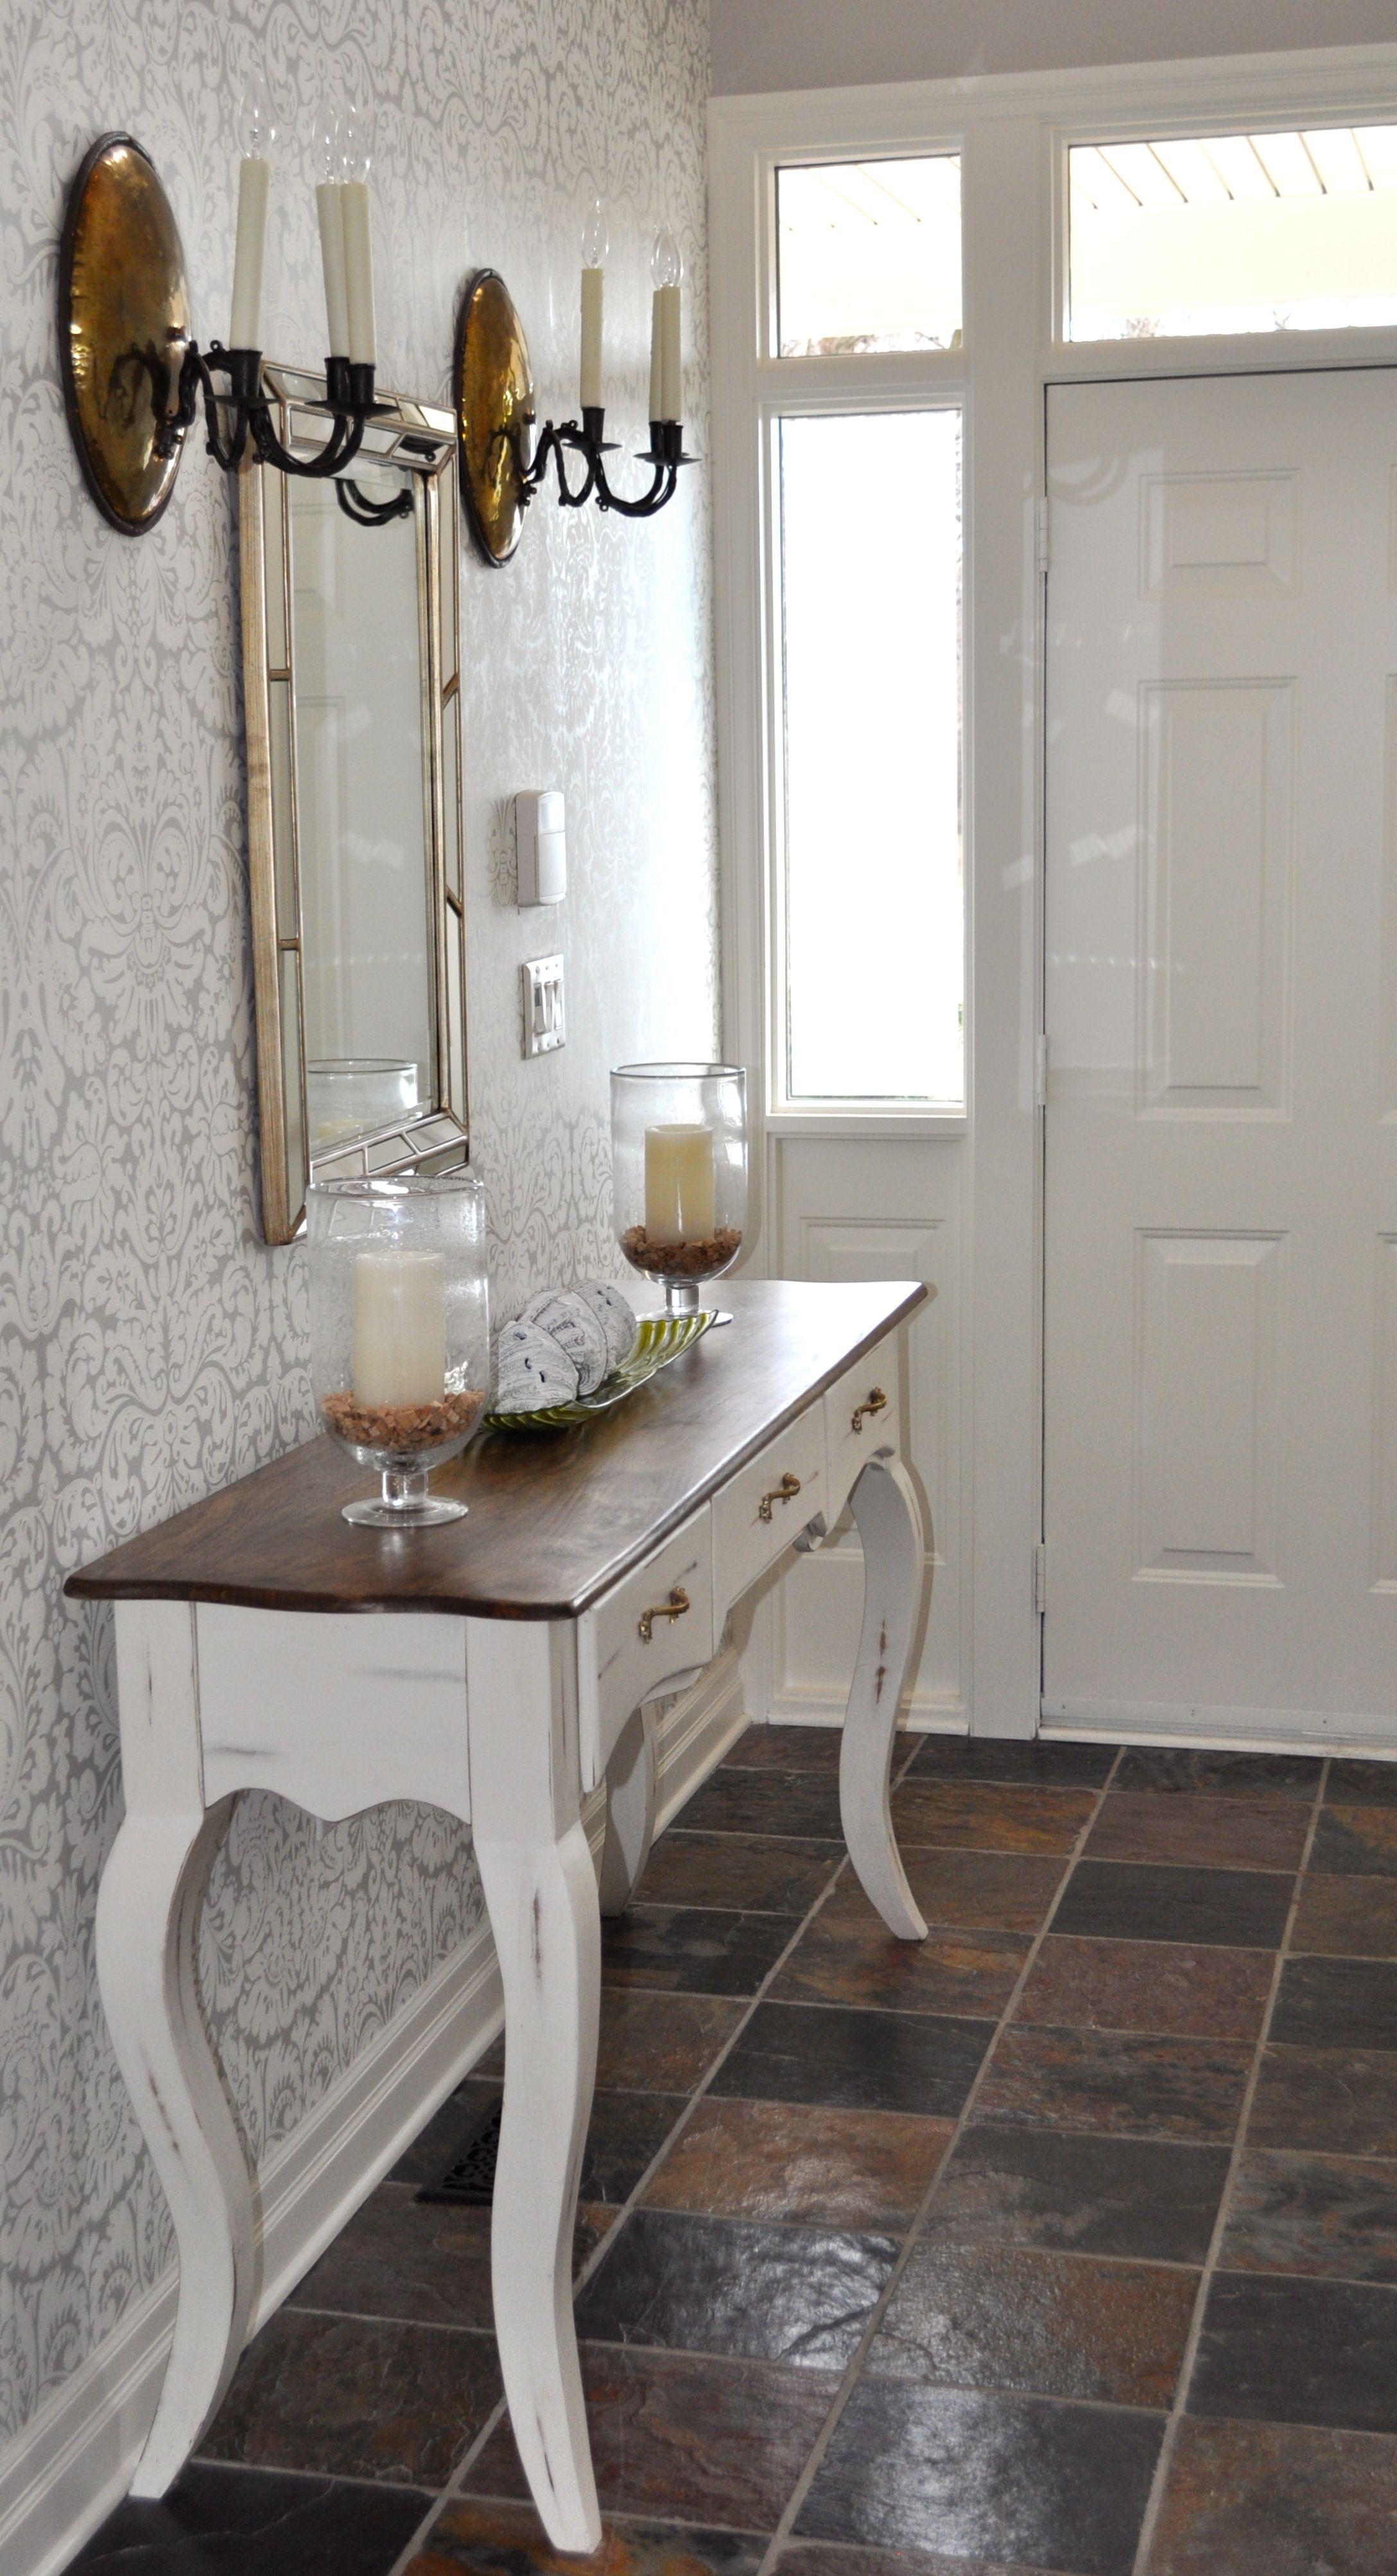 Farrow and Ball Silvergate wallpaper in an entryway we